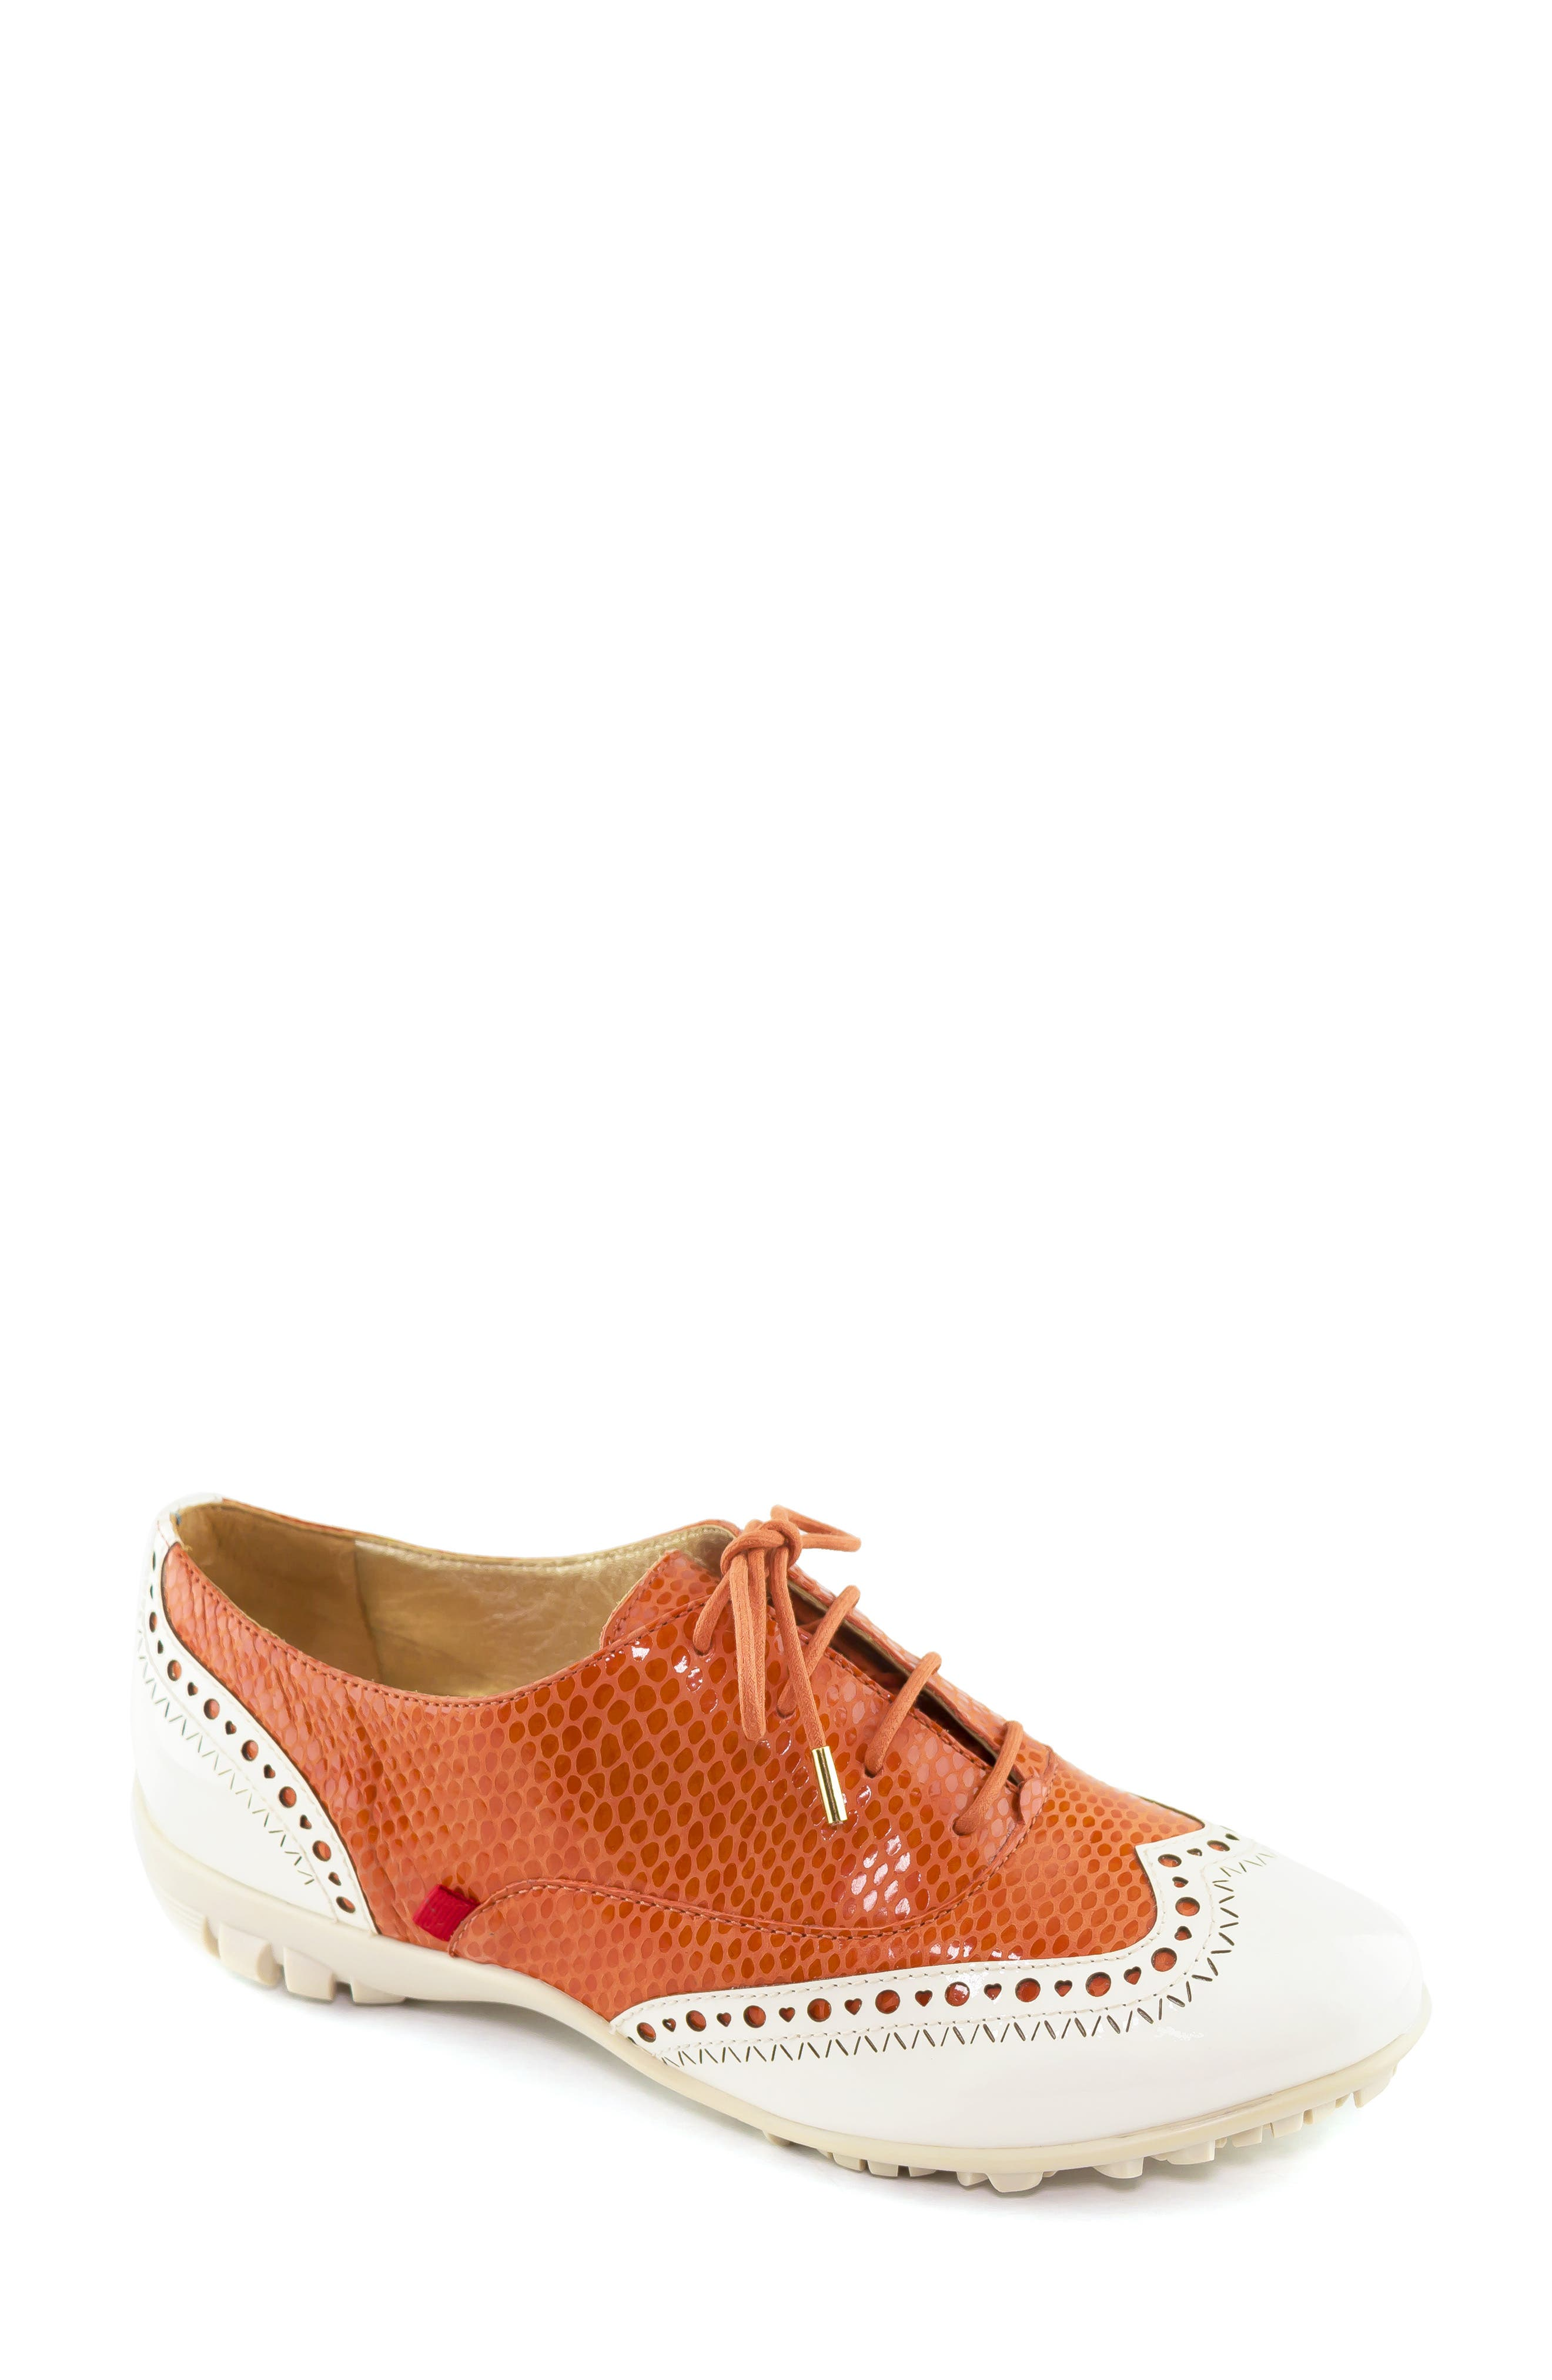 MARC JOSEPH NEW YORK NYC Golf Loafer, Main, color, CORAL SNAKE PRINT LEATHER